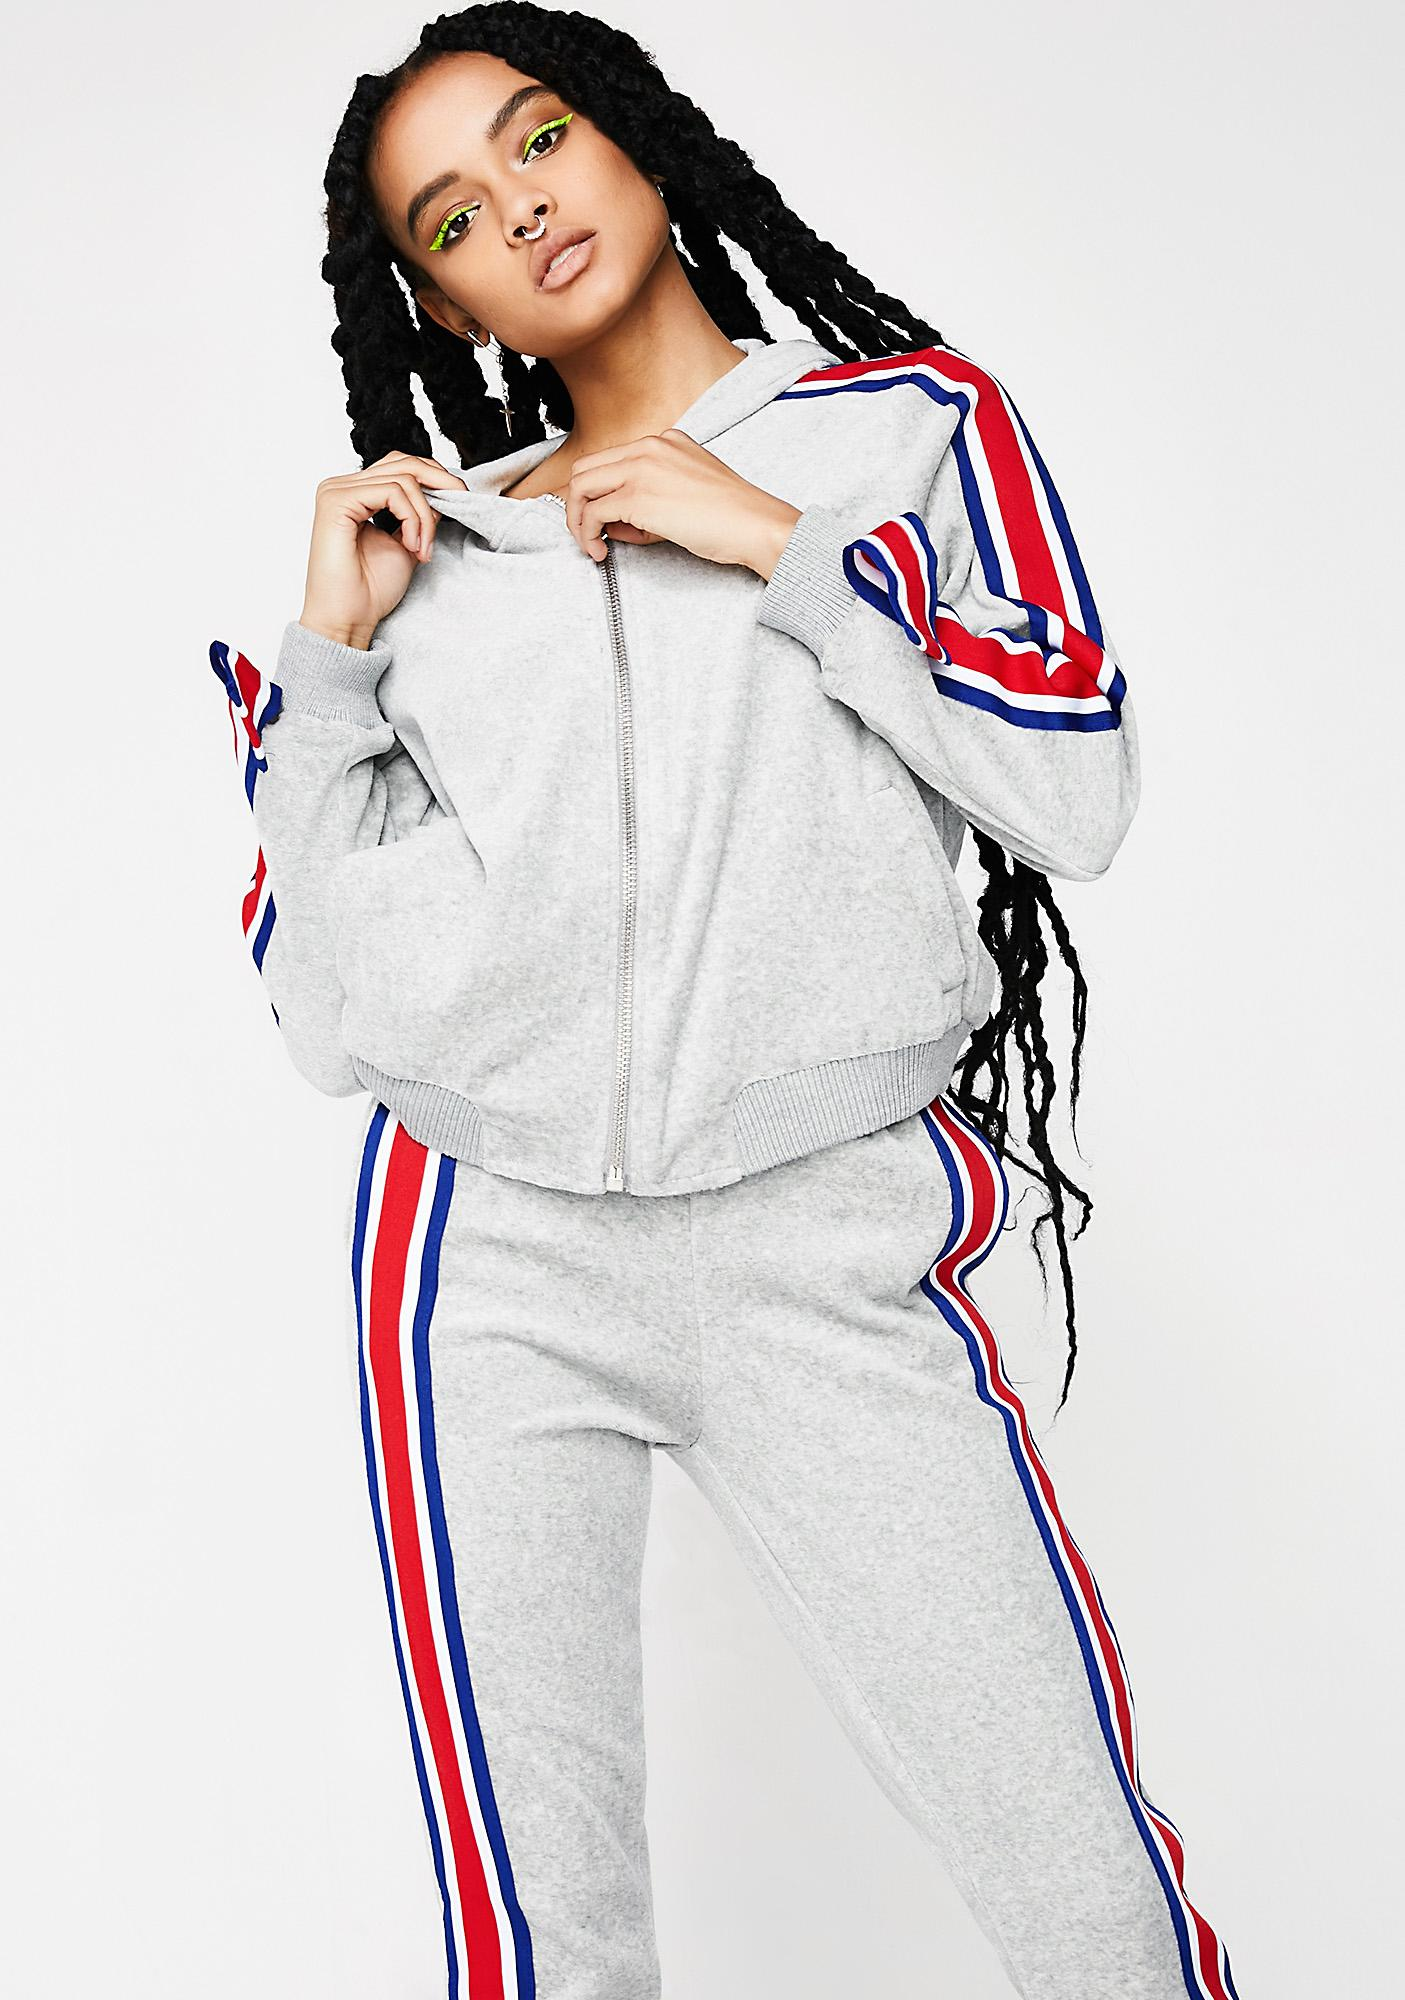 Contact High Track Suit